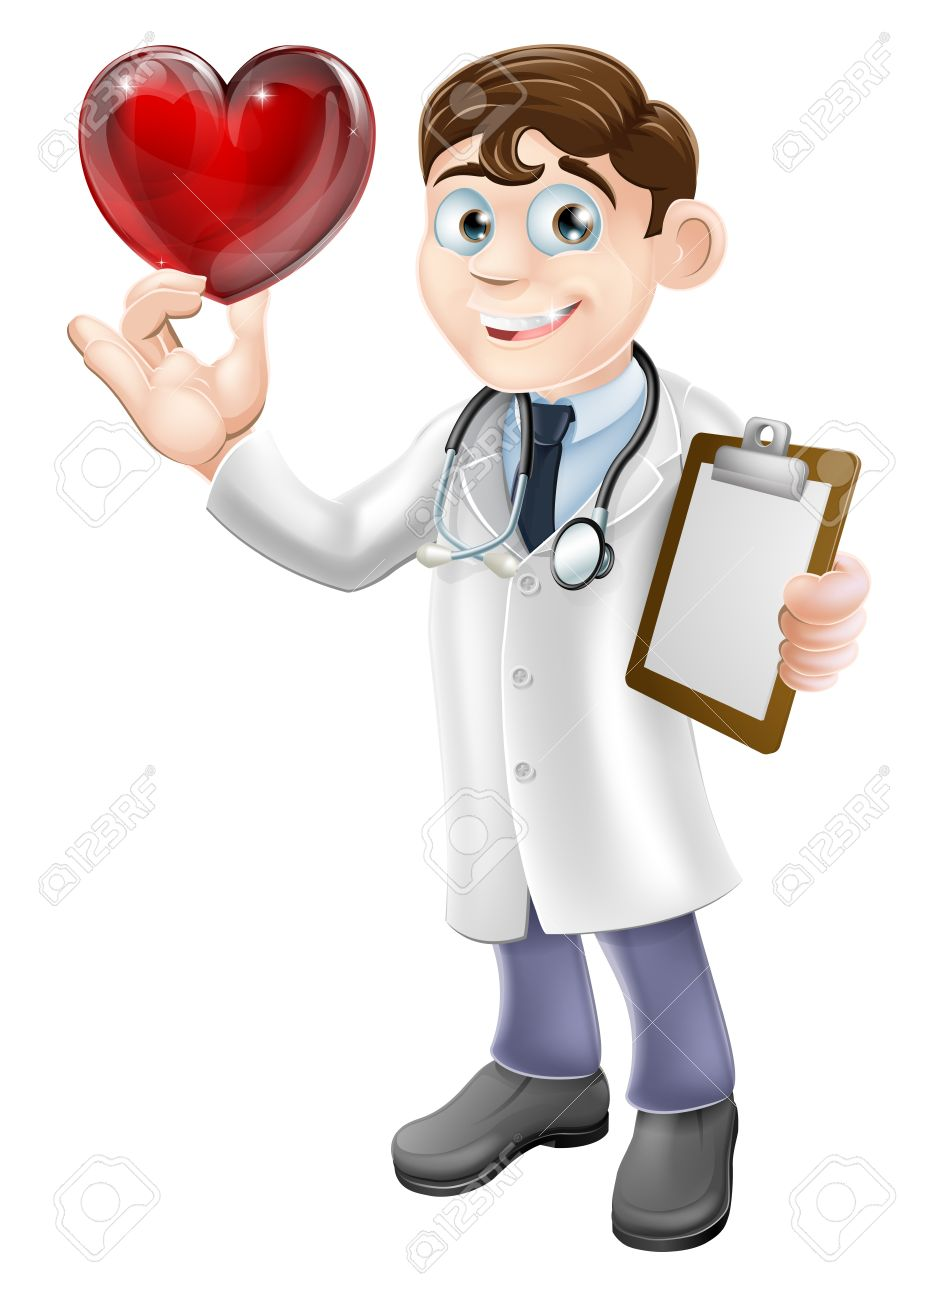 Cartoon illustration of a young doctor holding a heart shaped...